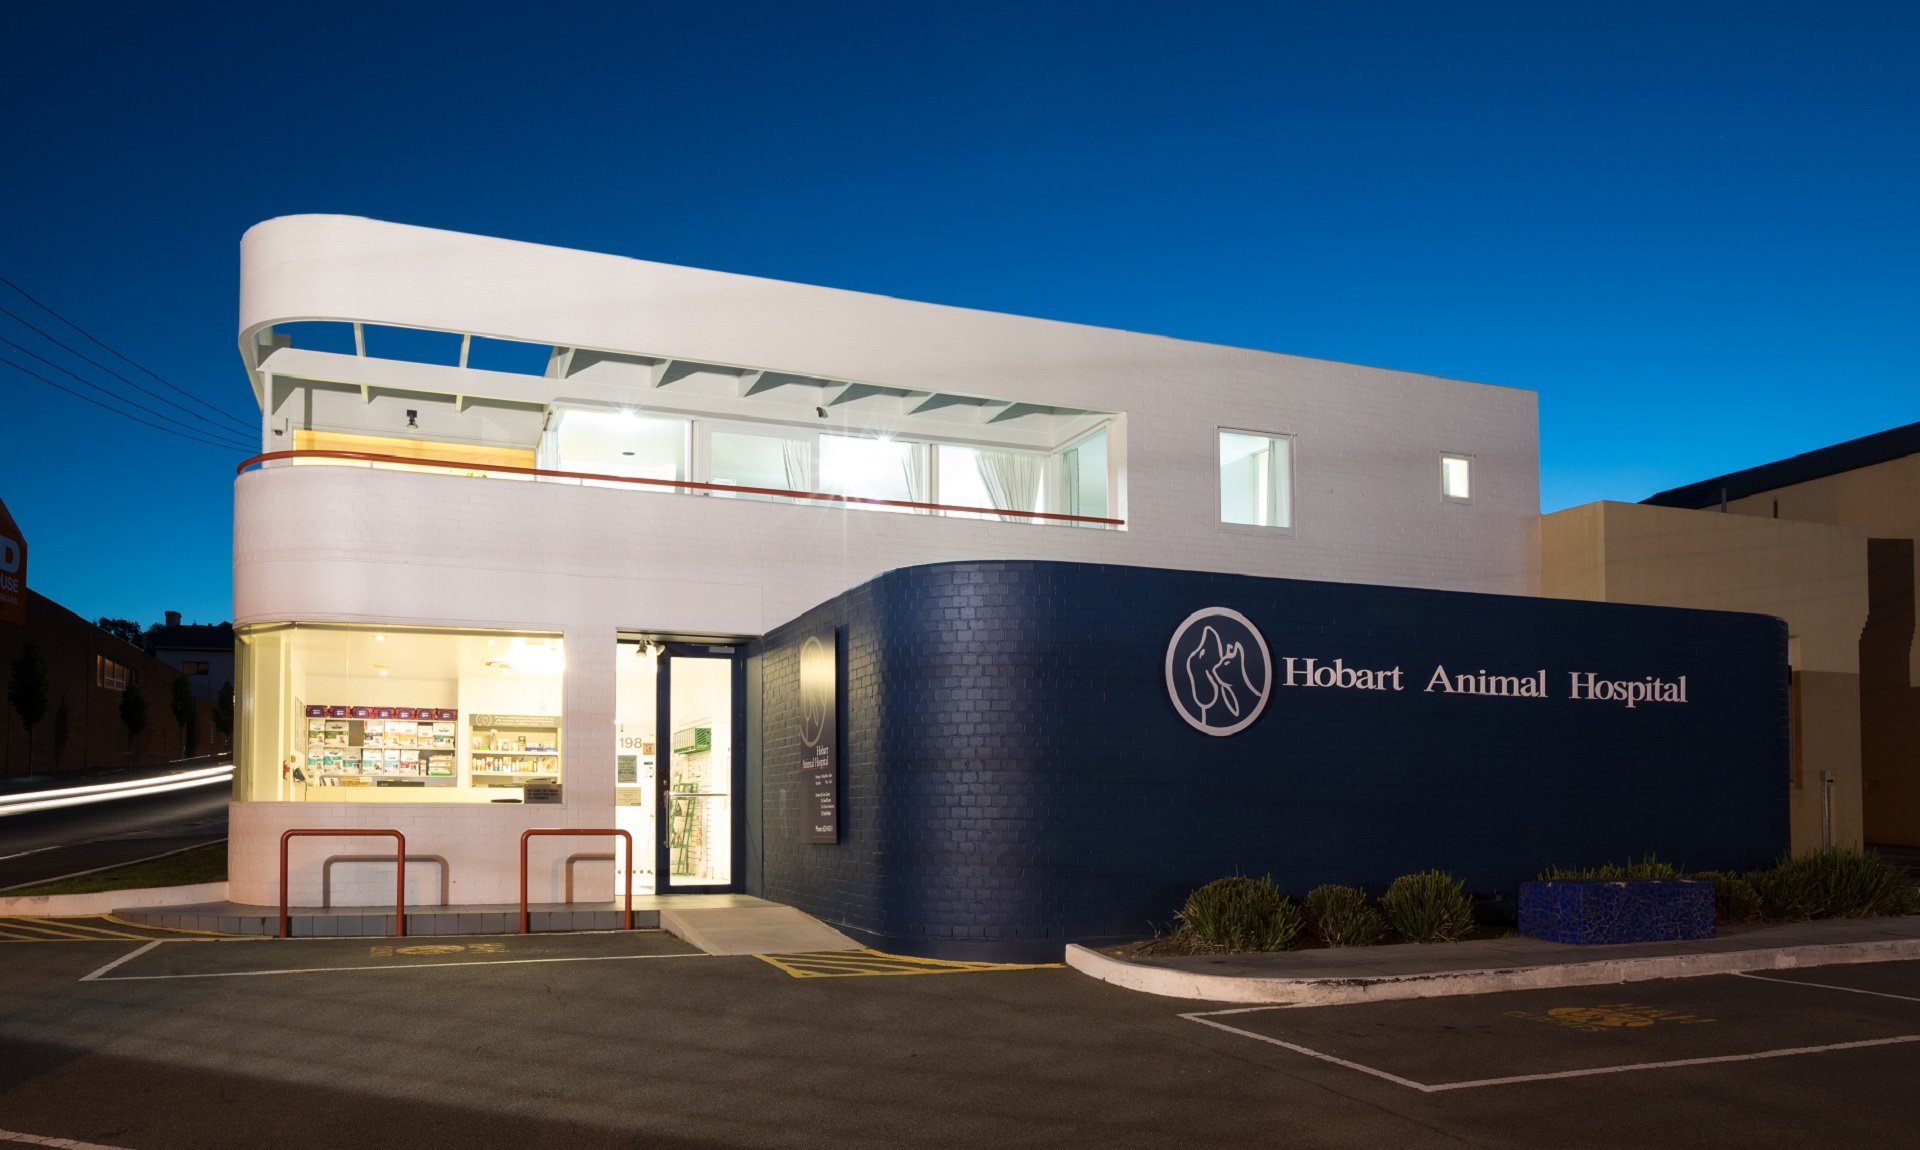 Hobart Animal Hospital